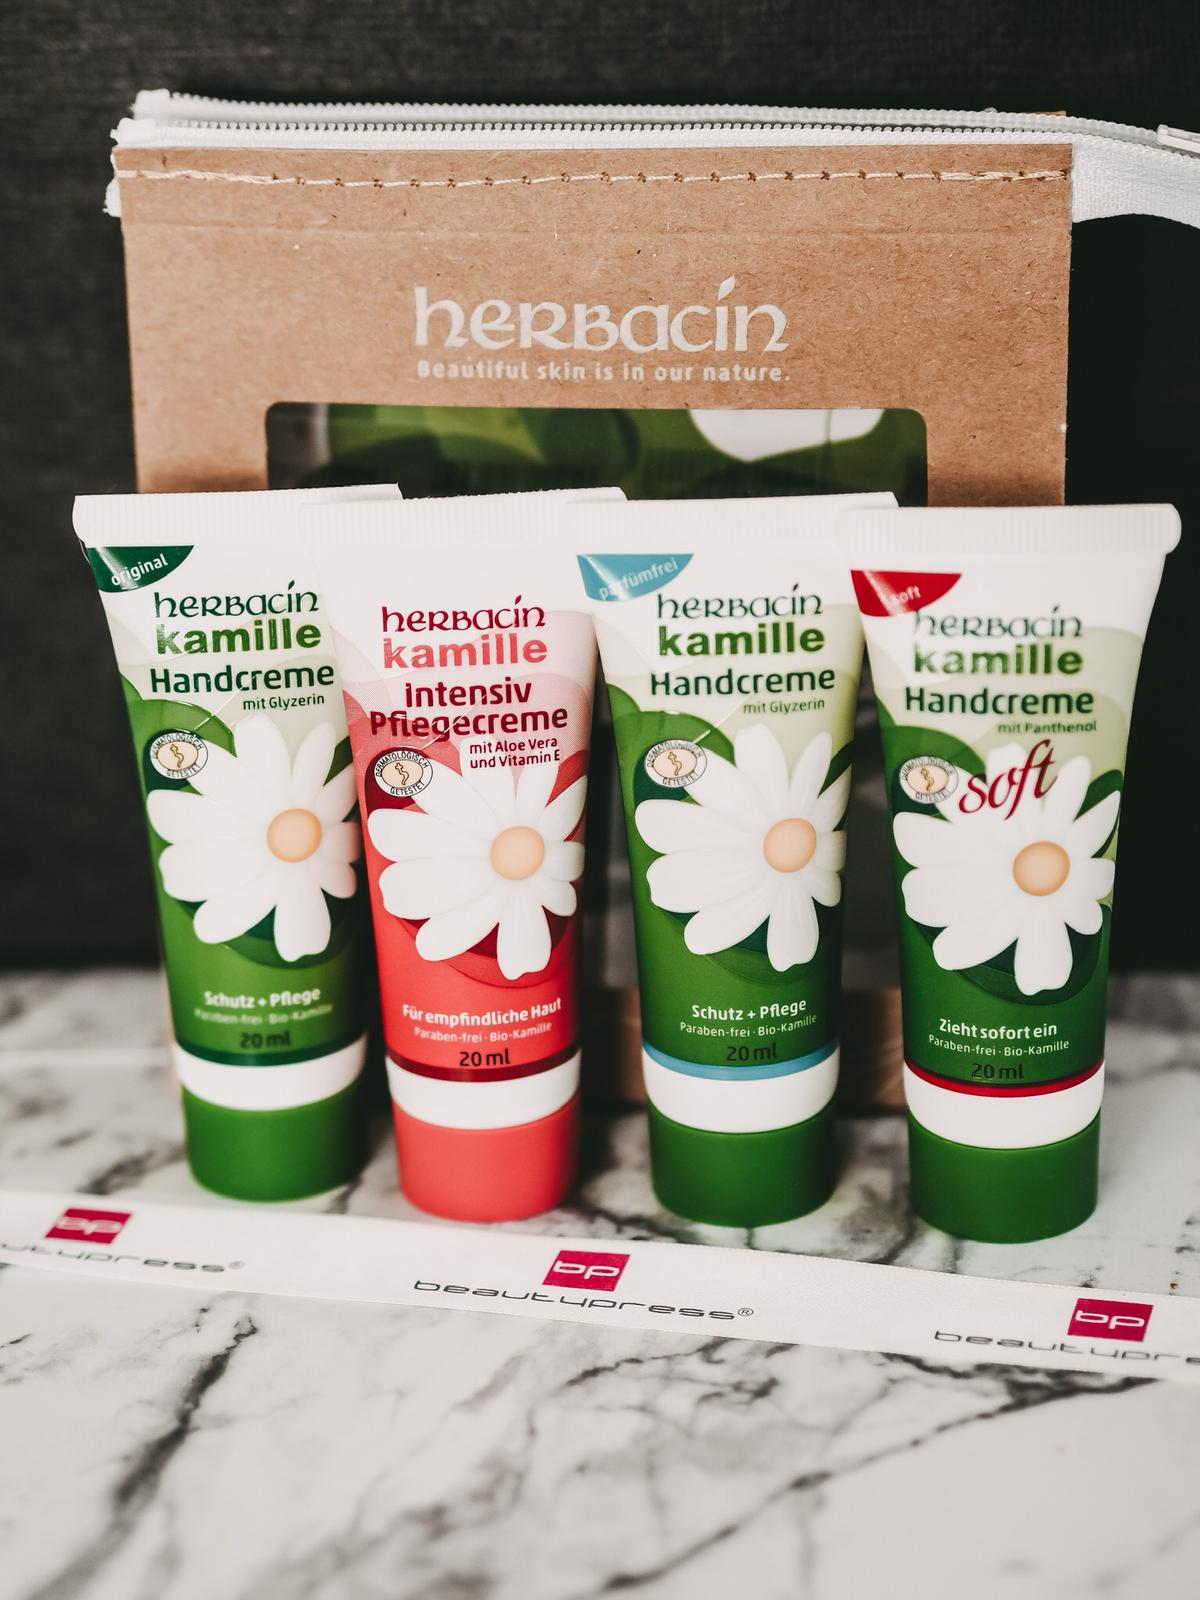 Beautypress News Box Juni 2020 - Herbacin Kamille